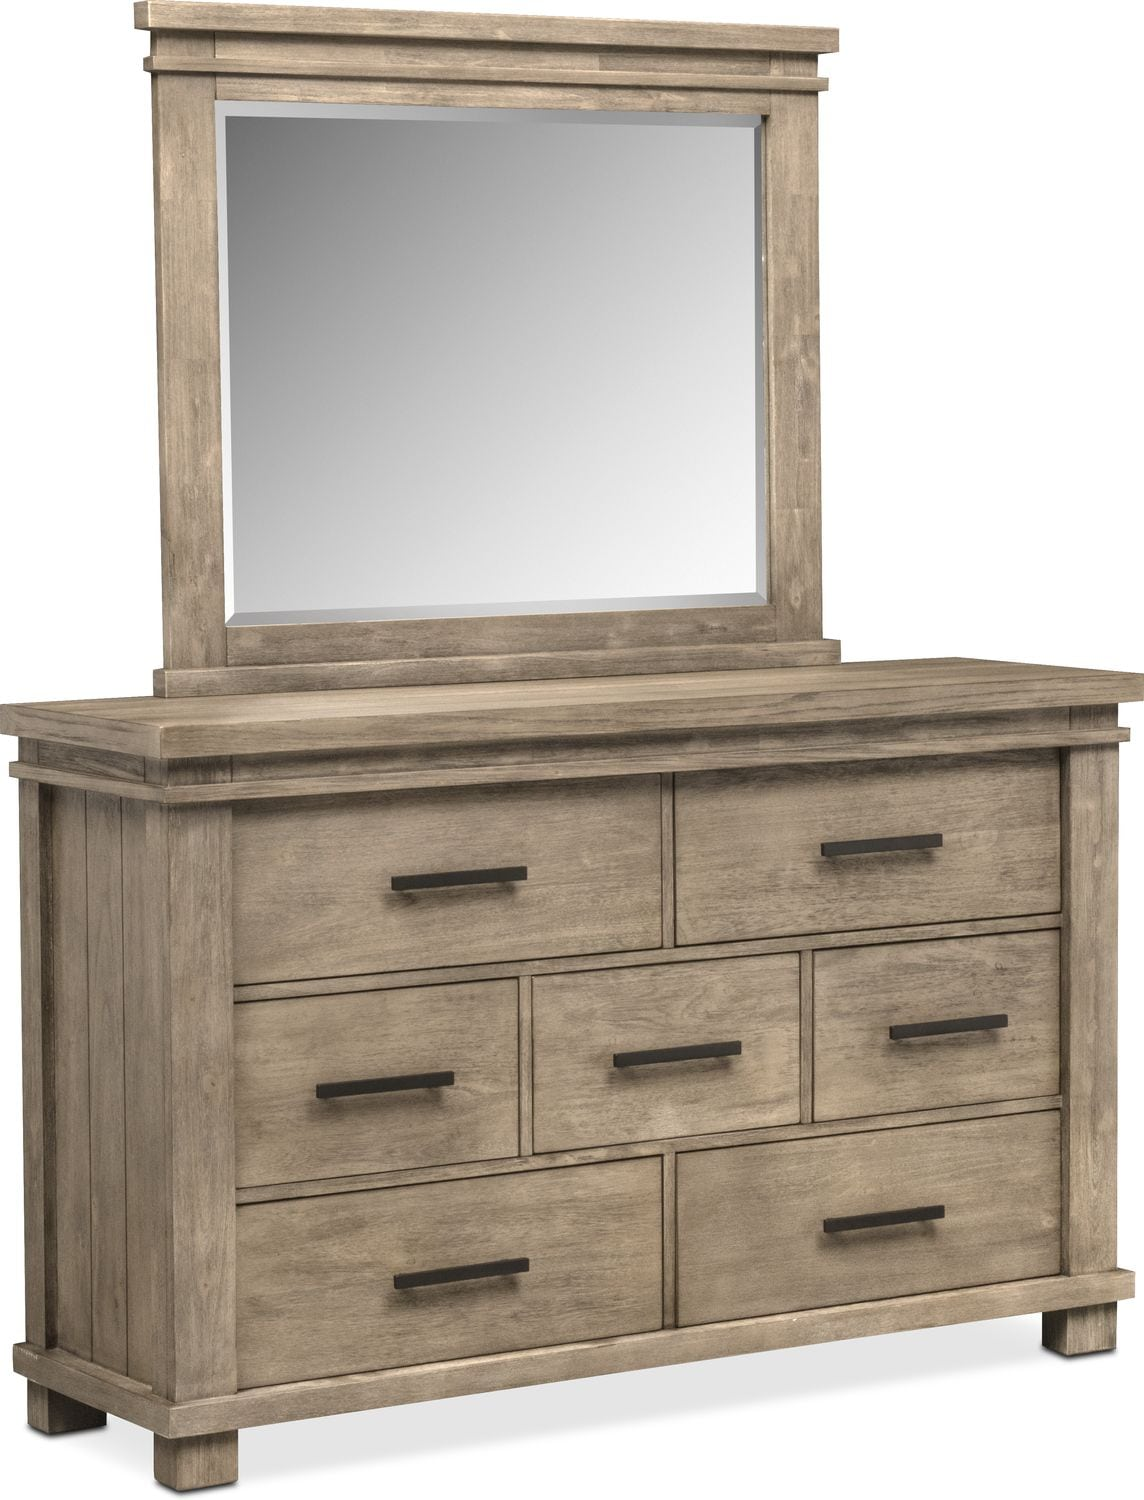 Tribeca 6 Piece King Storage Bedroom Set W 4 Underbed Drawers Gray American Signature Furniture